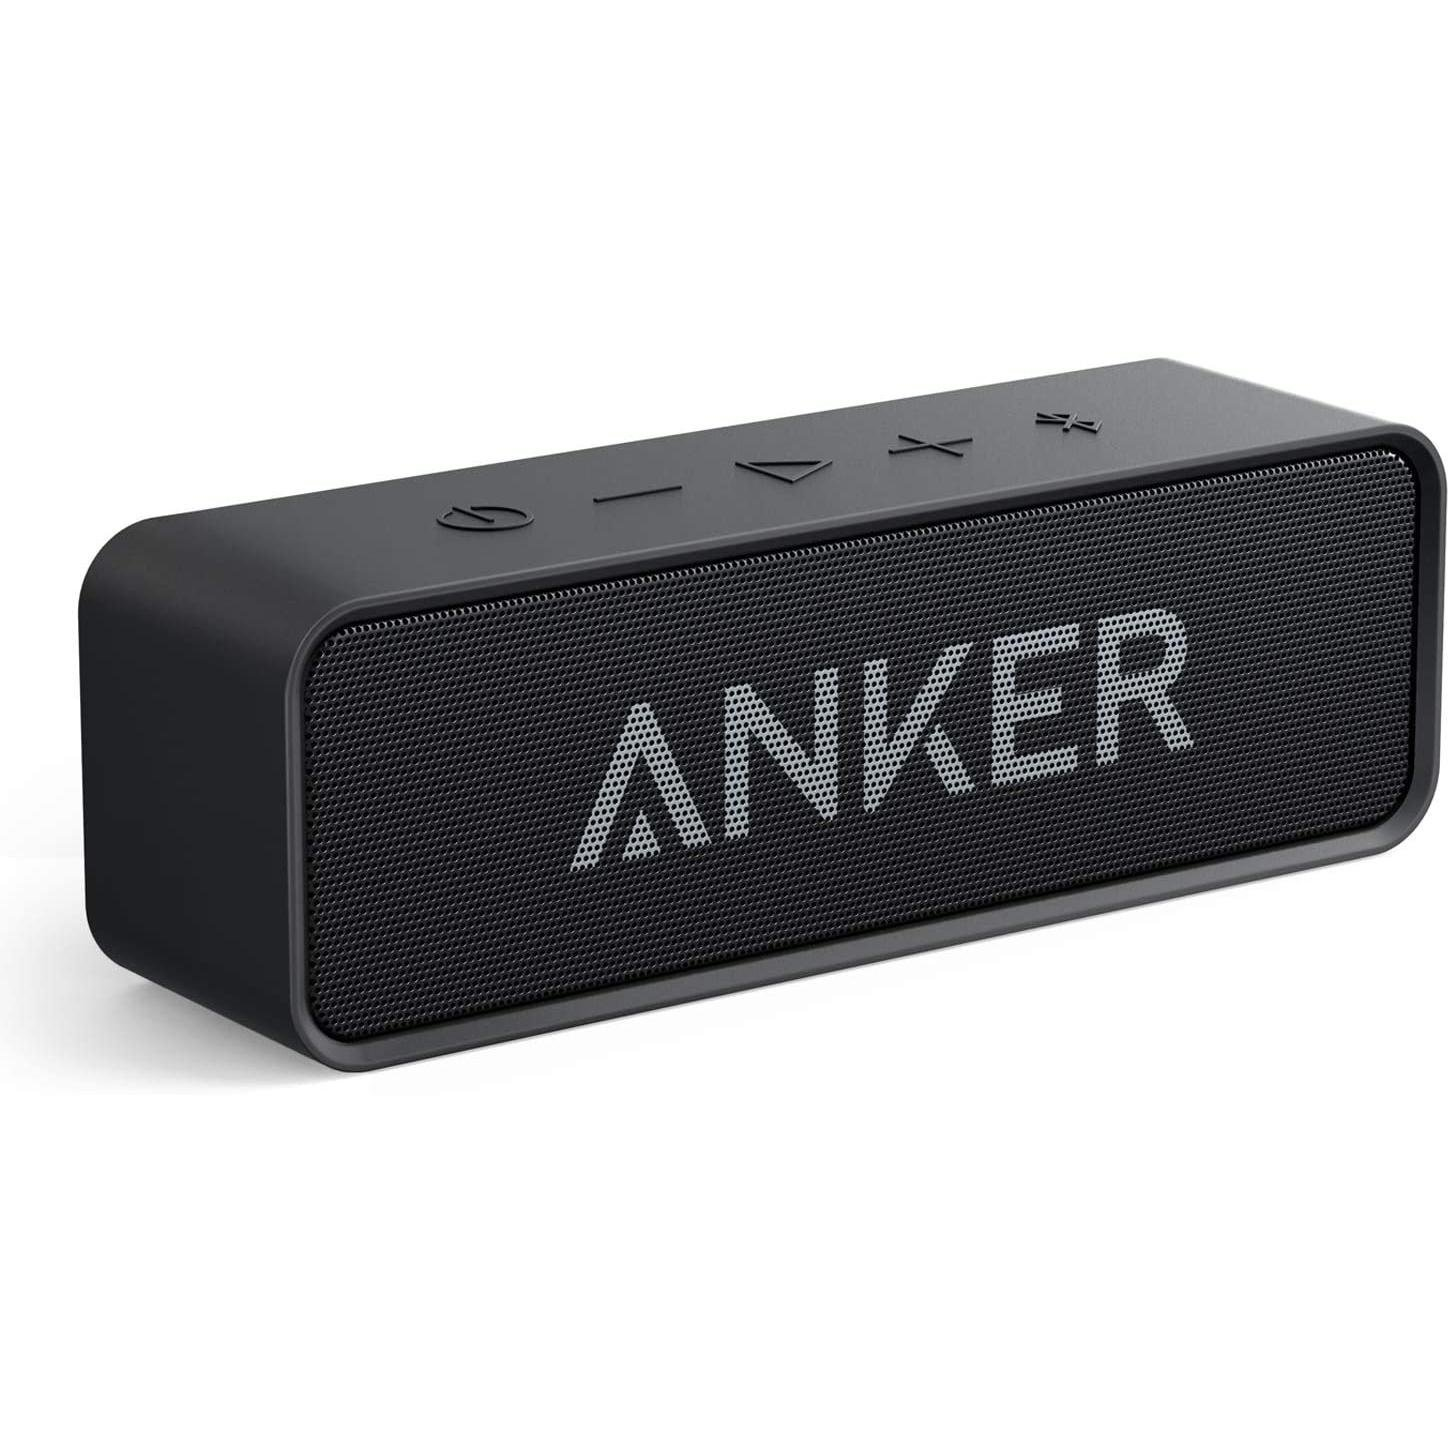 Anker Soundcore Bluetooth Speaker with Loud Stereo Sound, 24-Hour Playtime, 66 ft Bluetooth Range, Portable Wireless